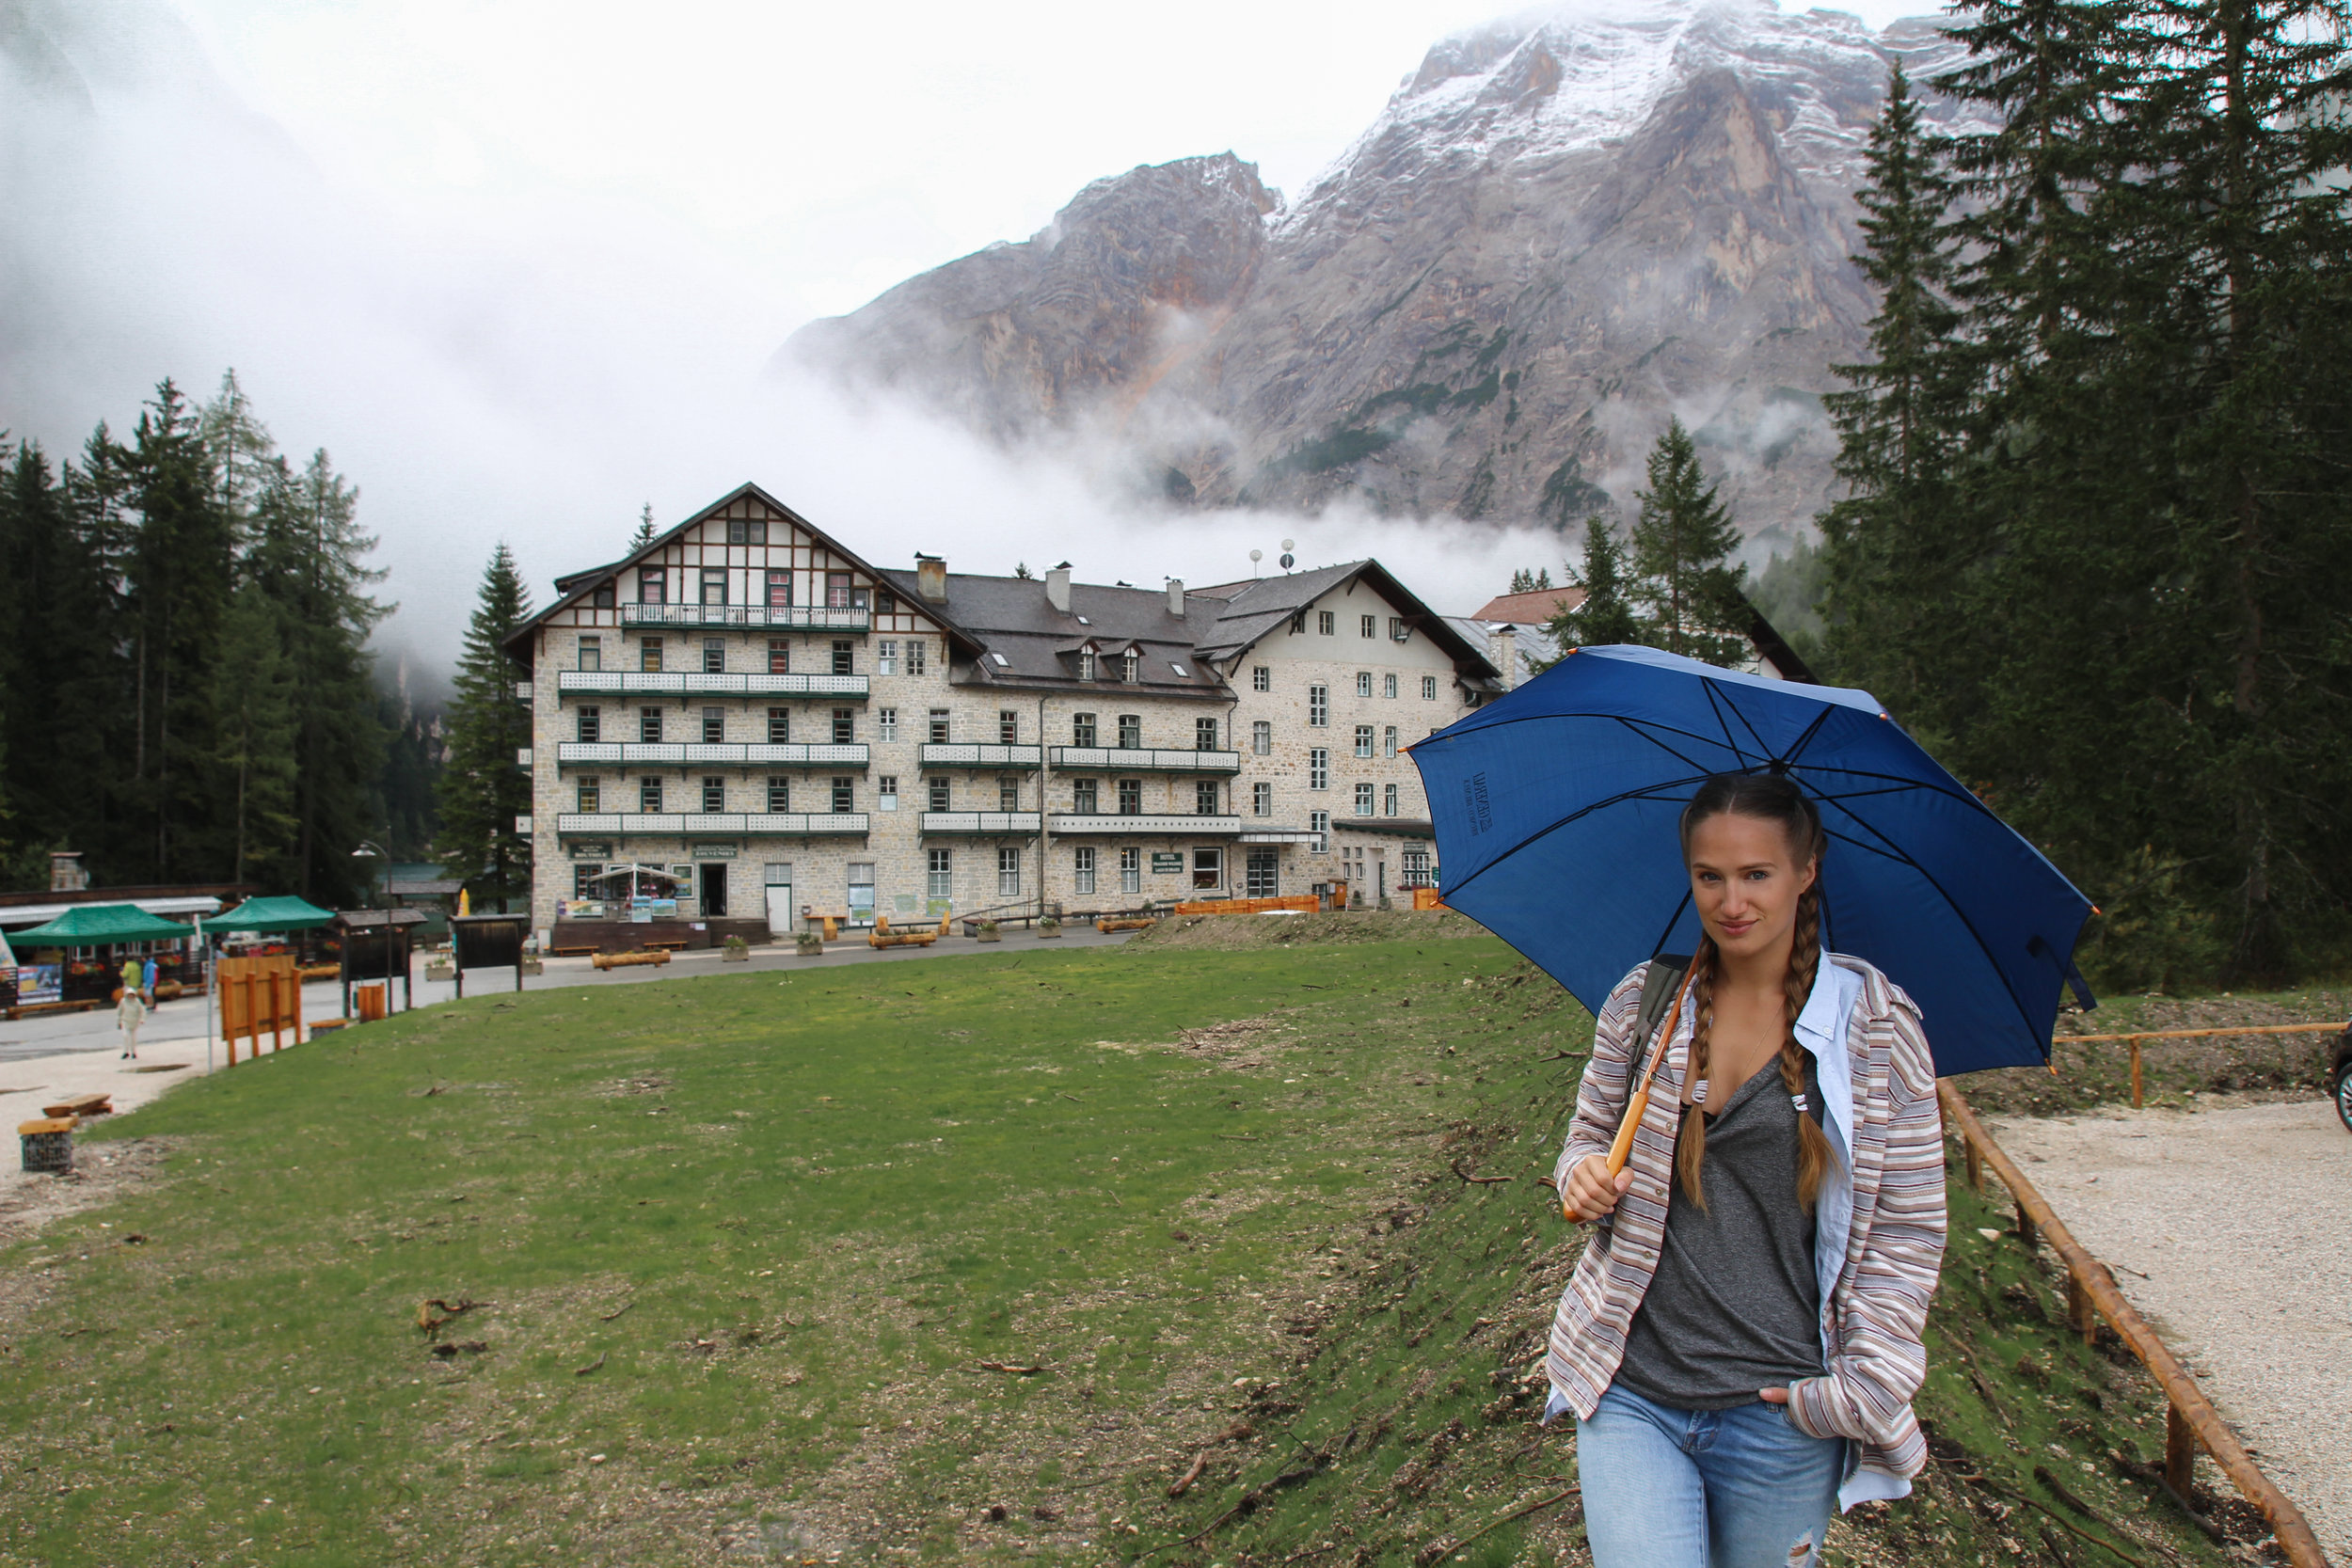 Playing in the rain at Hotel Pragser Wildsee